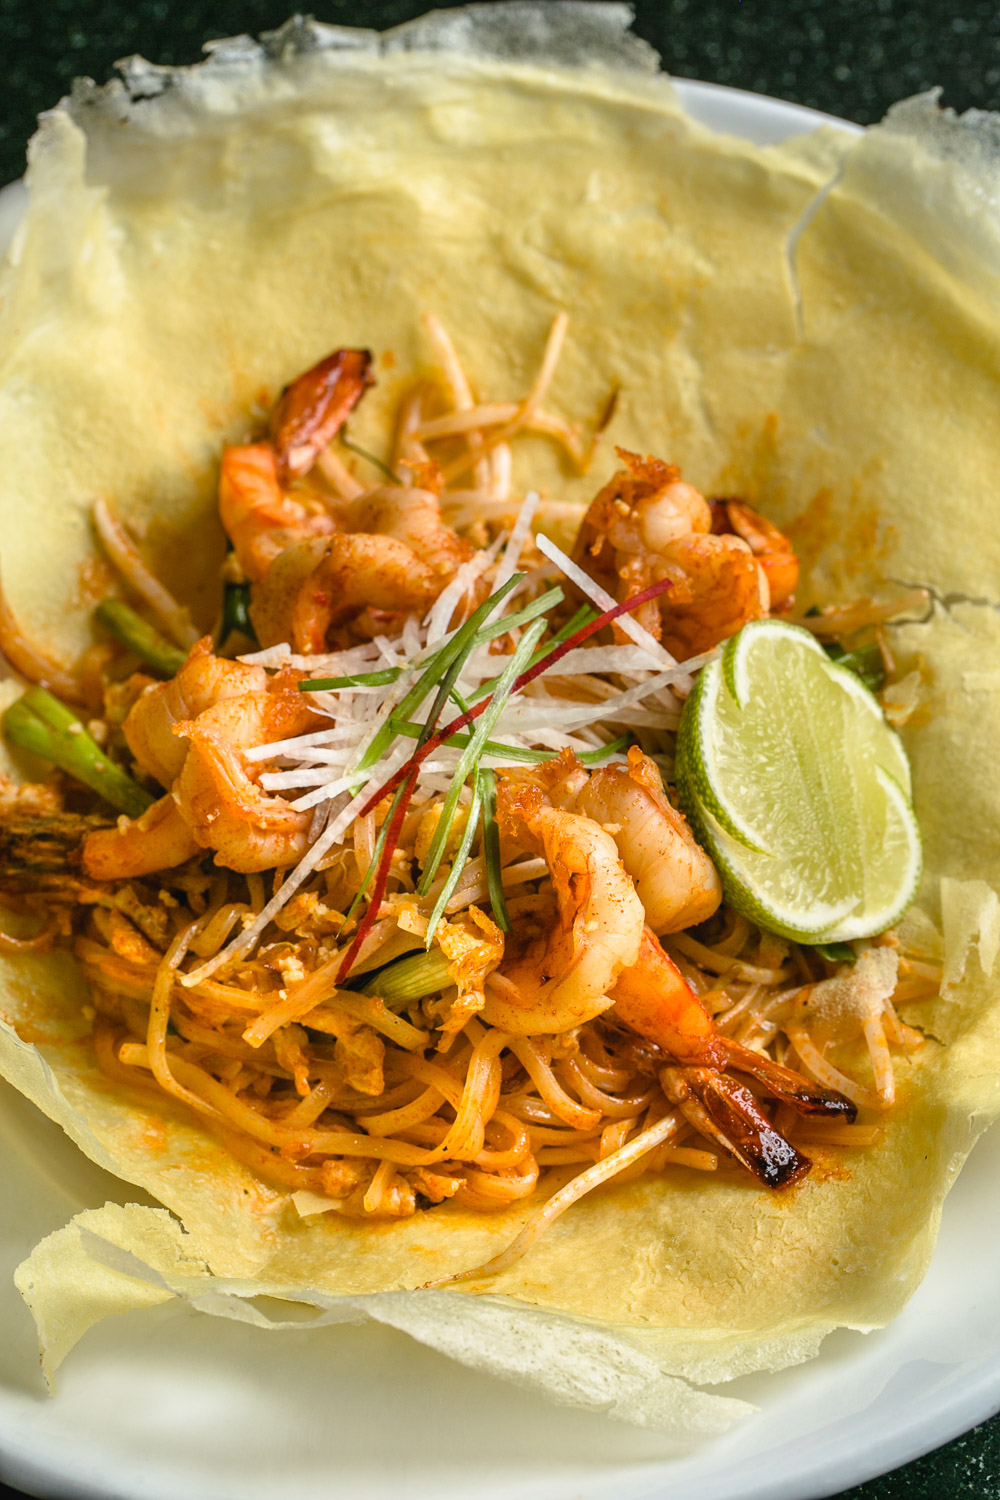 Nan-Thai-Fine-Dining-Pad-Thai-Erik-Meadows